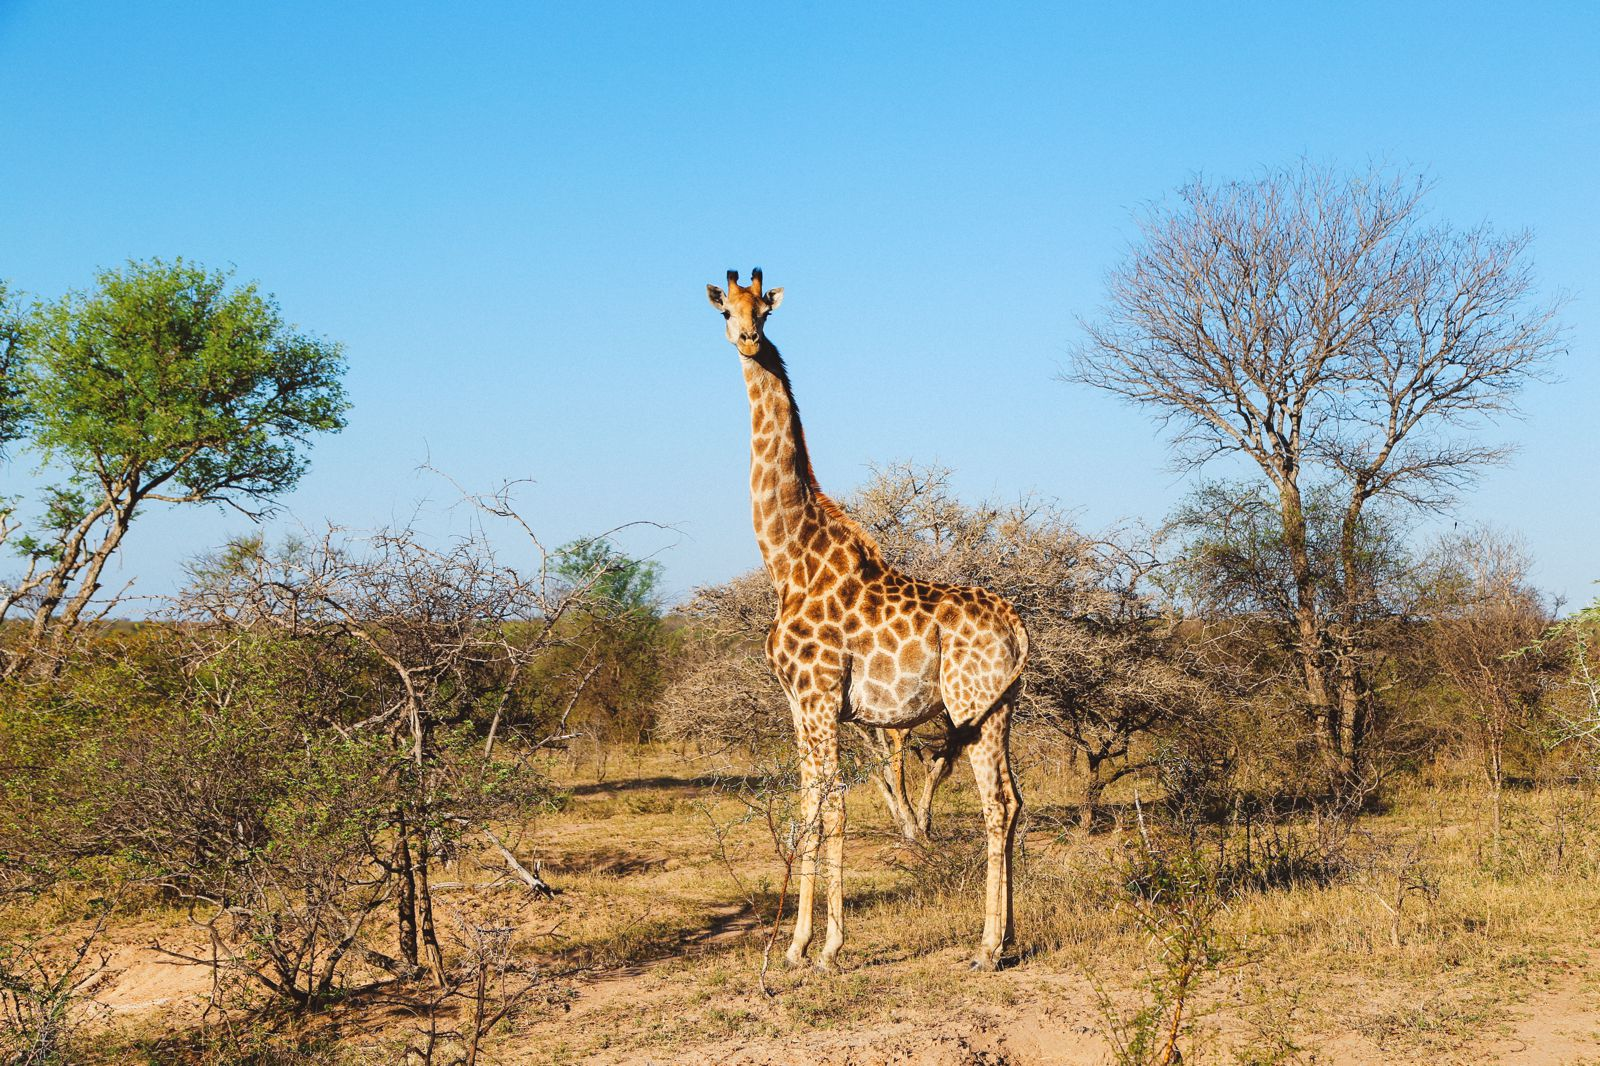 Midnight Lions, Skittish Giraffes And The Deadliest Of The Safari Big 5 In South Africa (40)